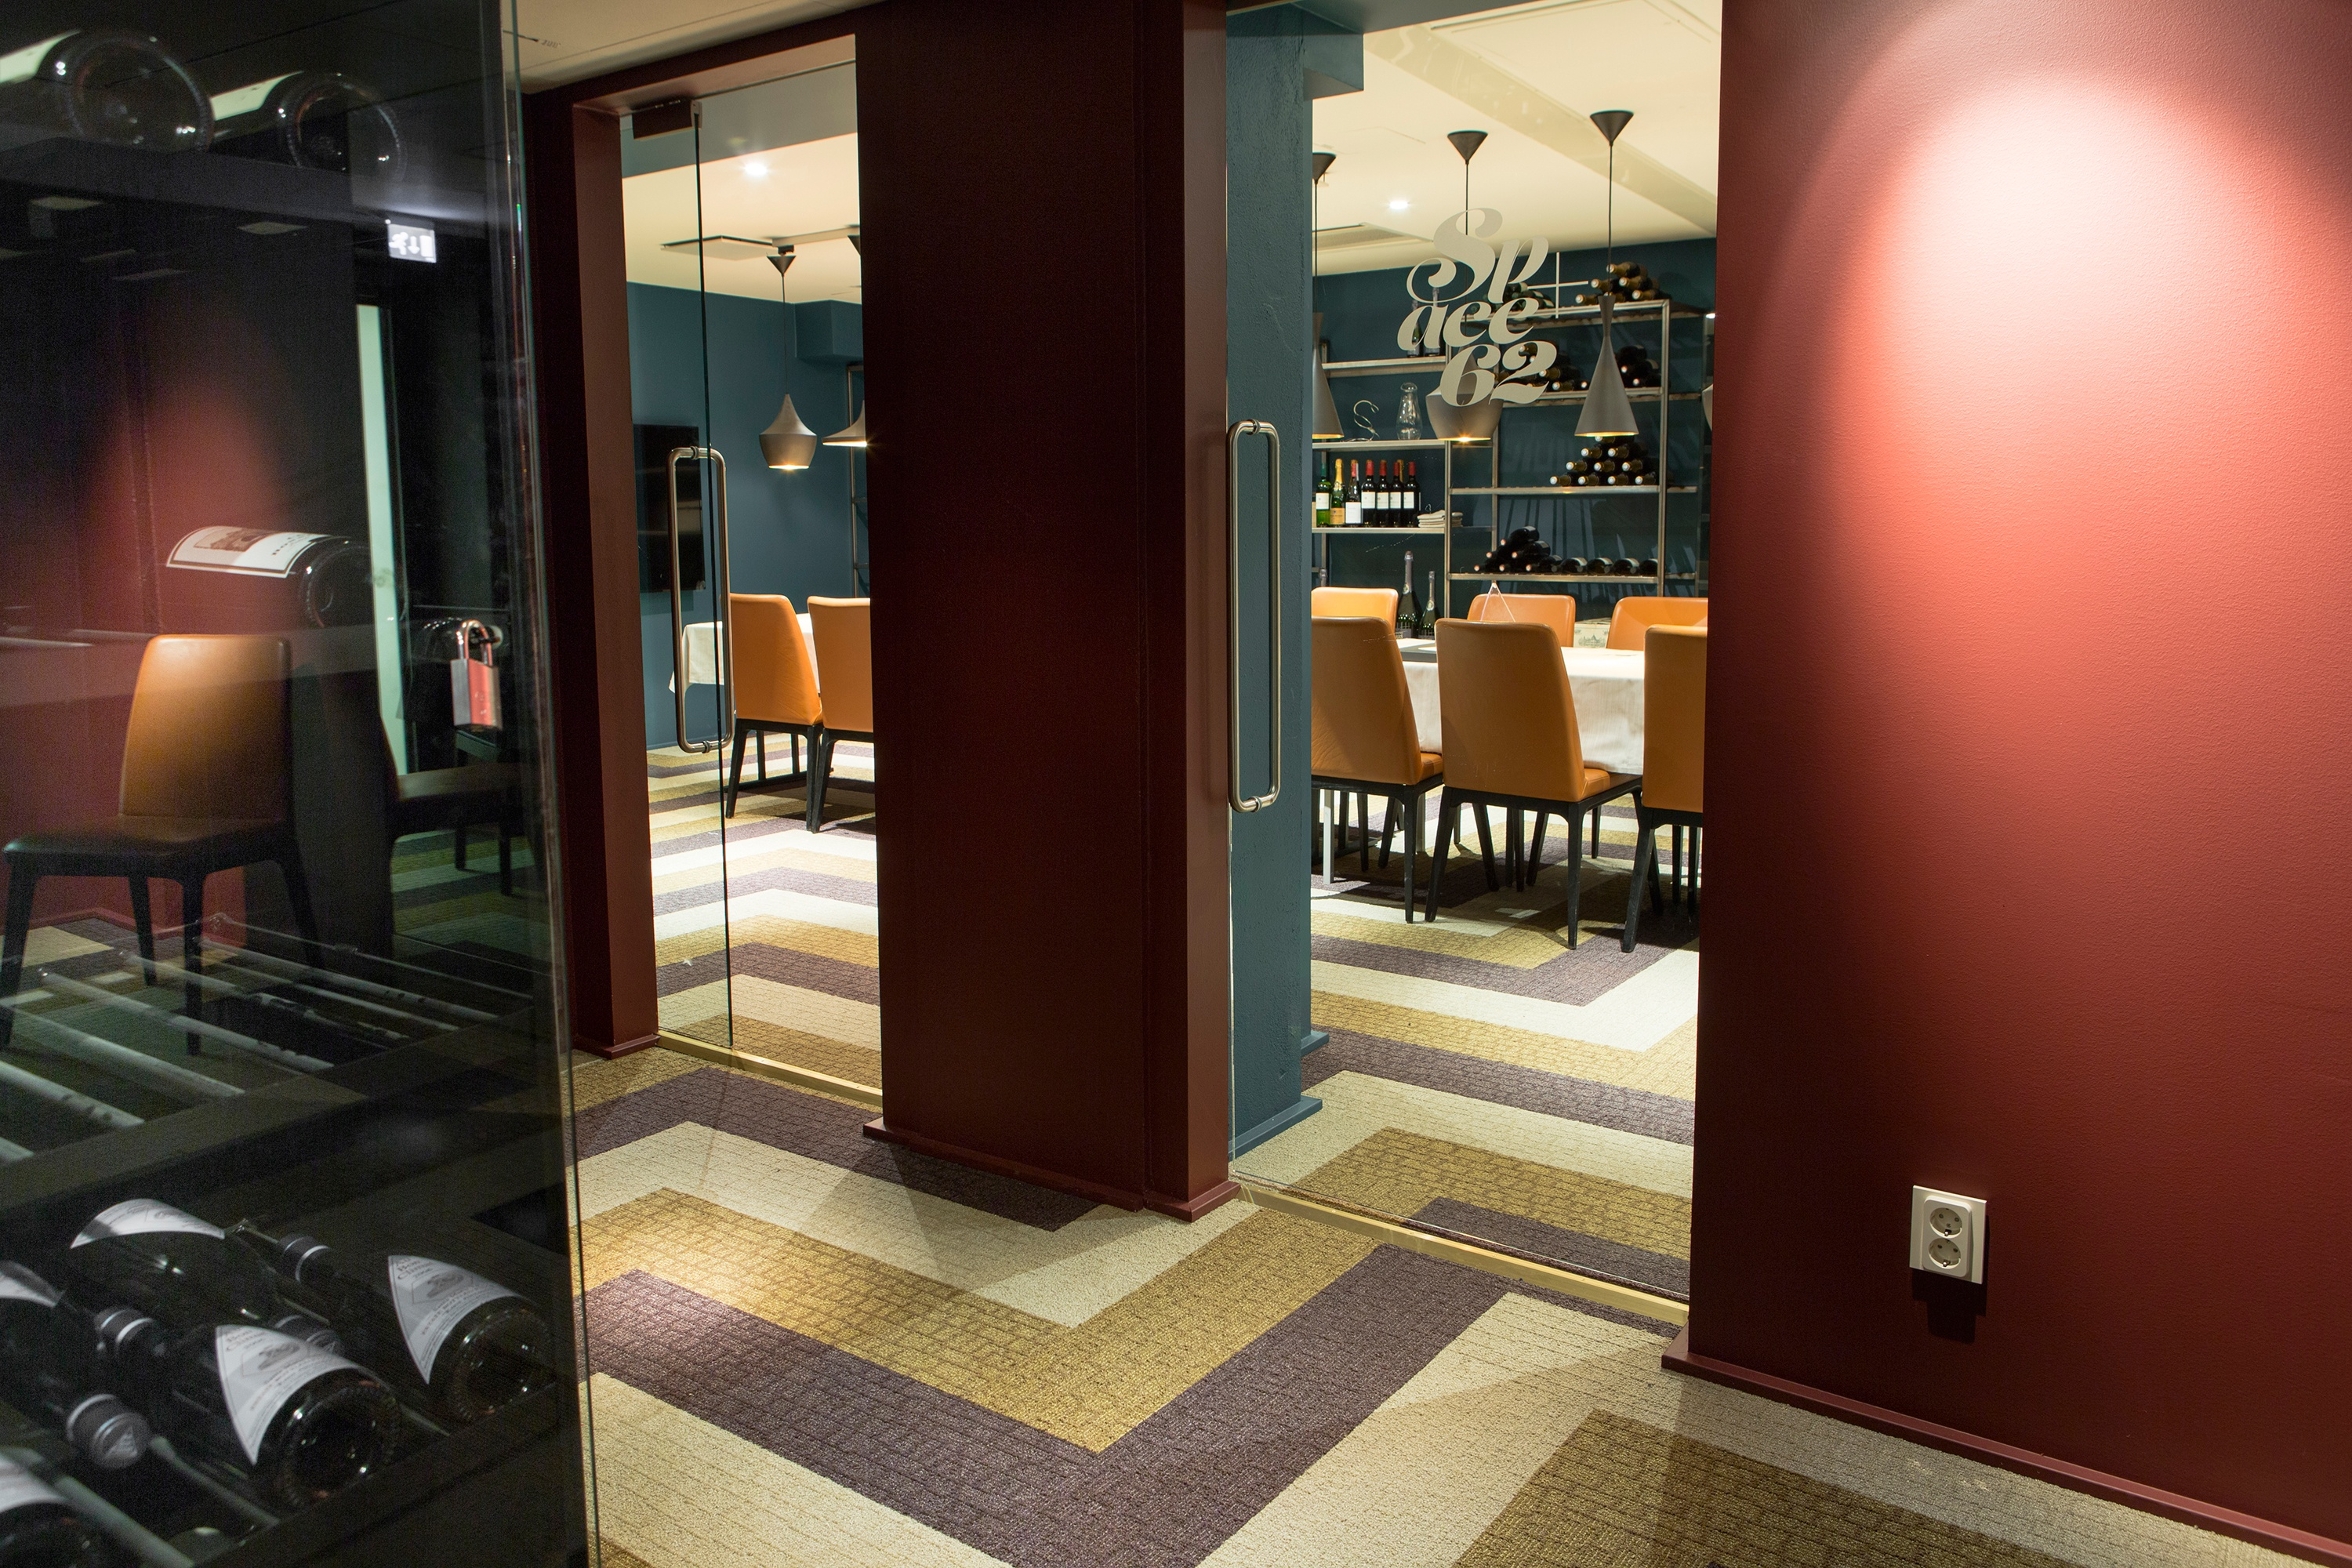 Carpet tiles by ege in red, yellow and white used in a restaurant